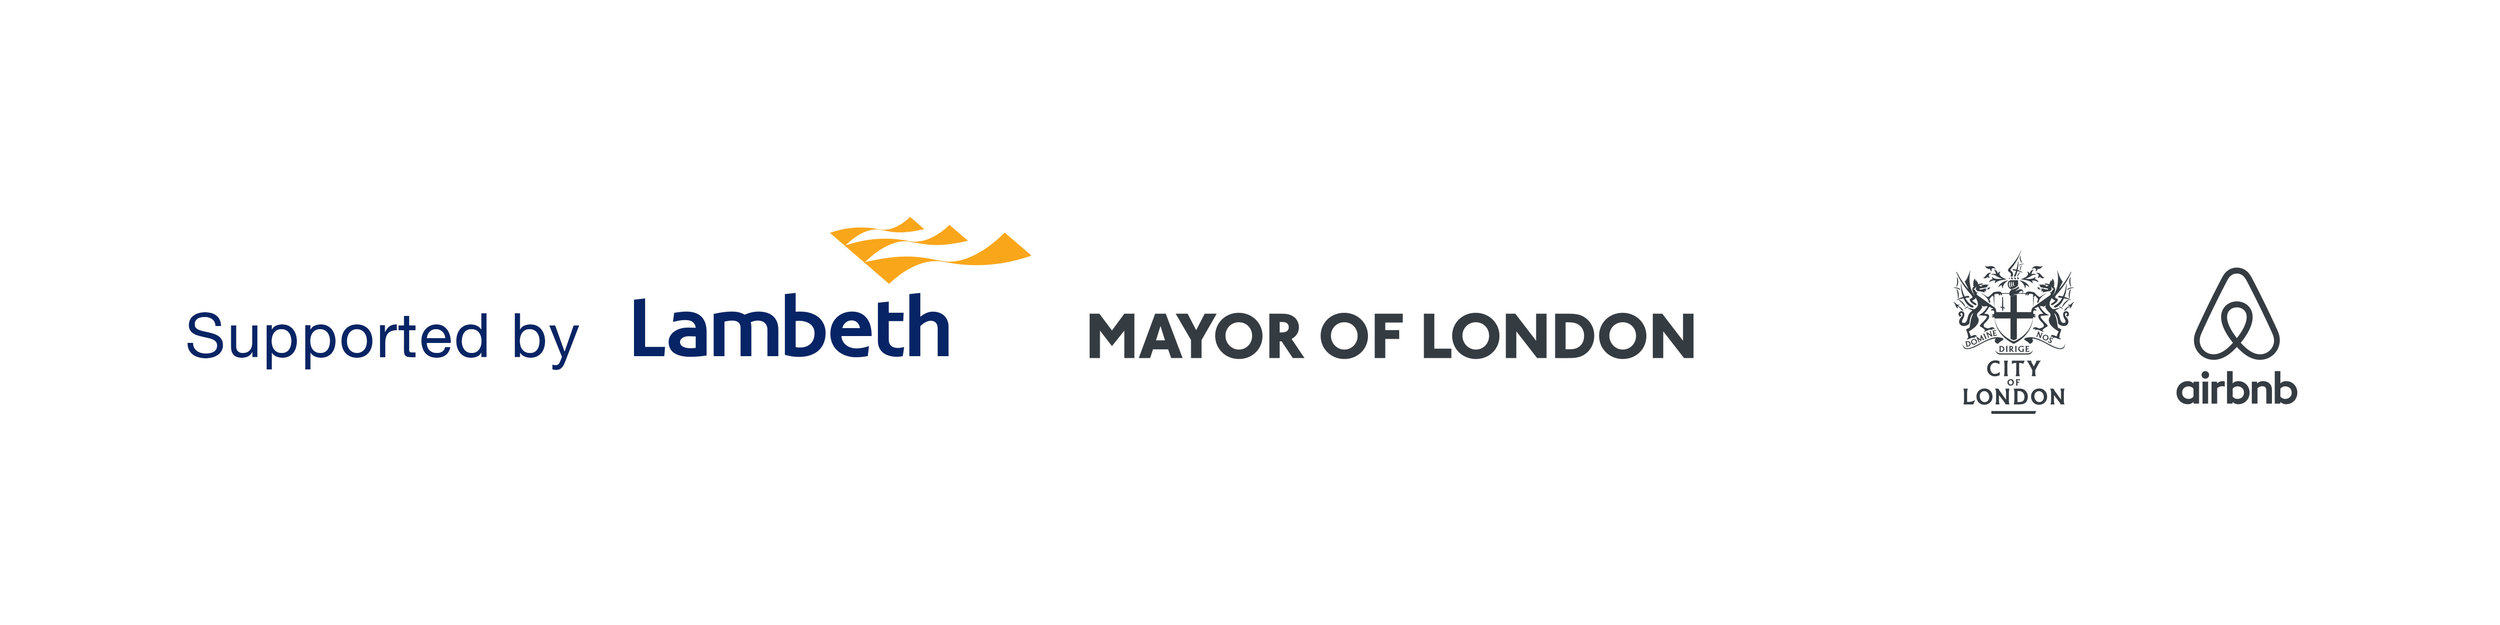 Supported by Lambeth.jpg